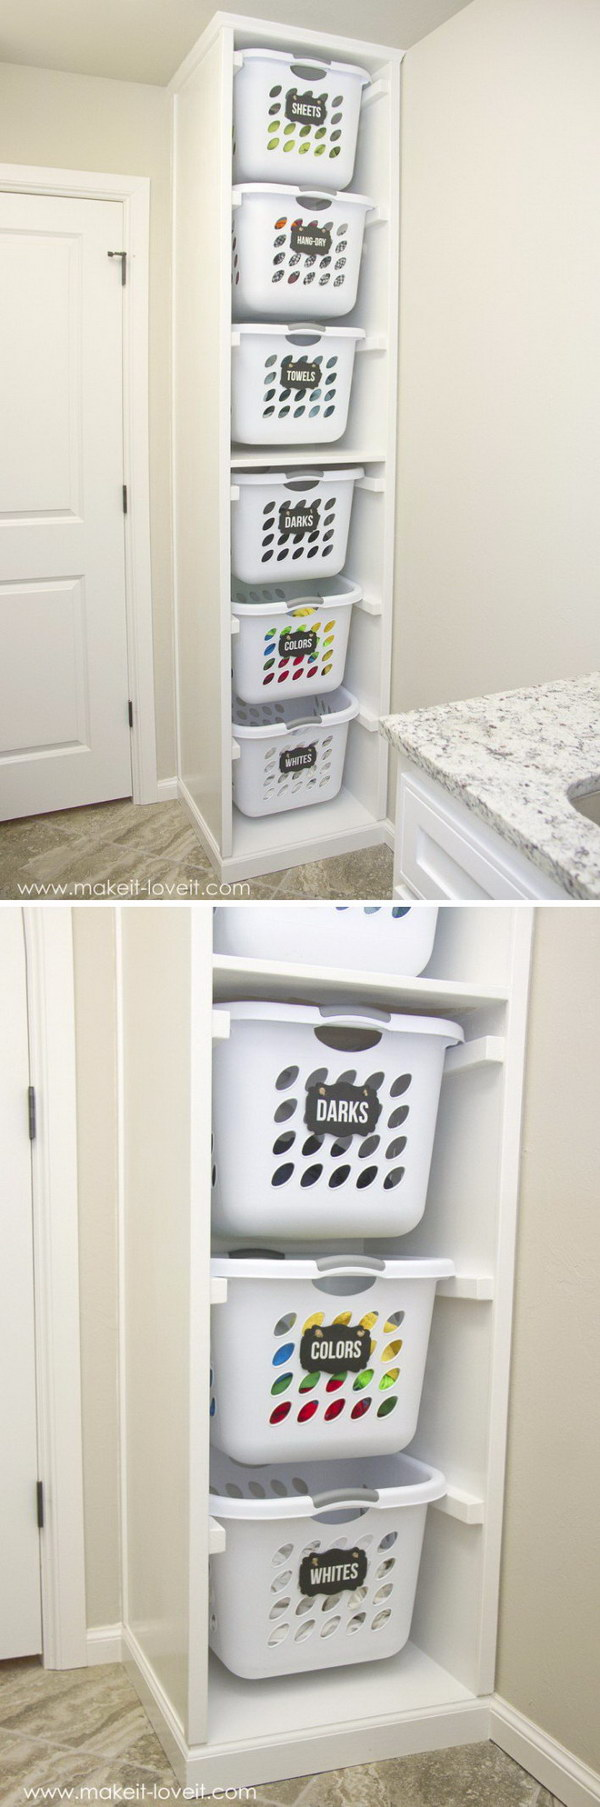 Declutter your room with this DIY laundry basket organizer.